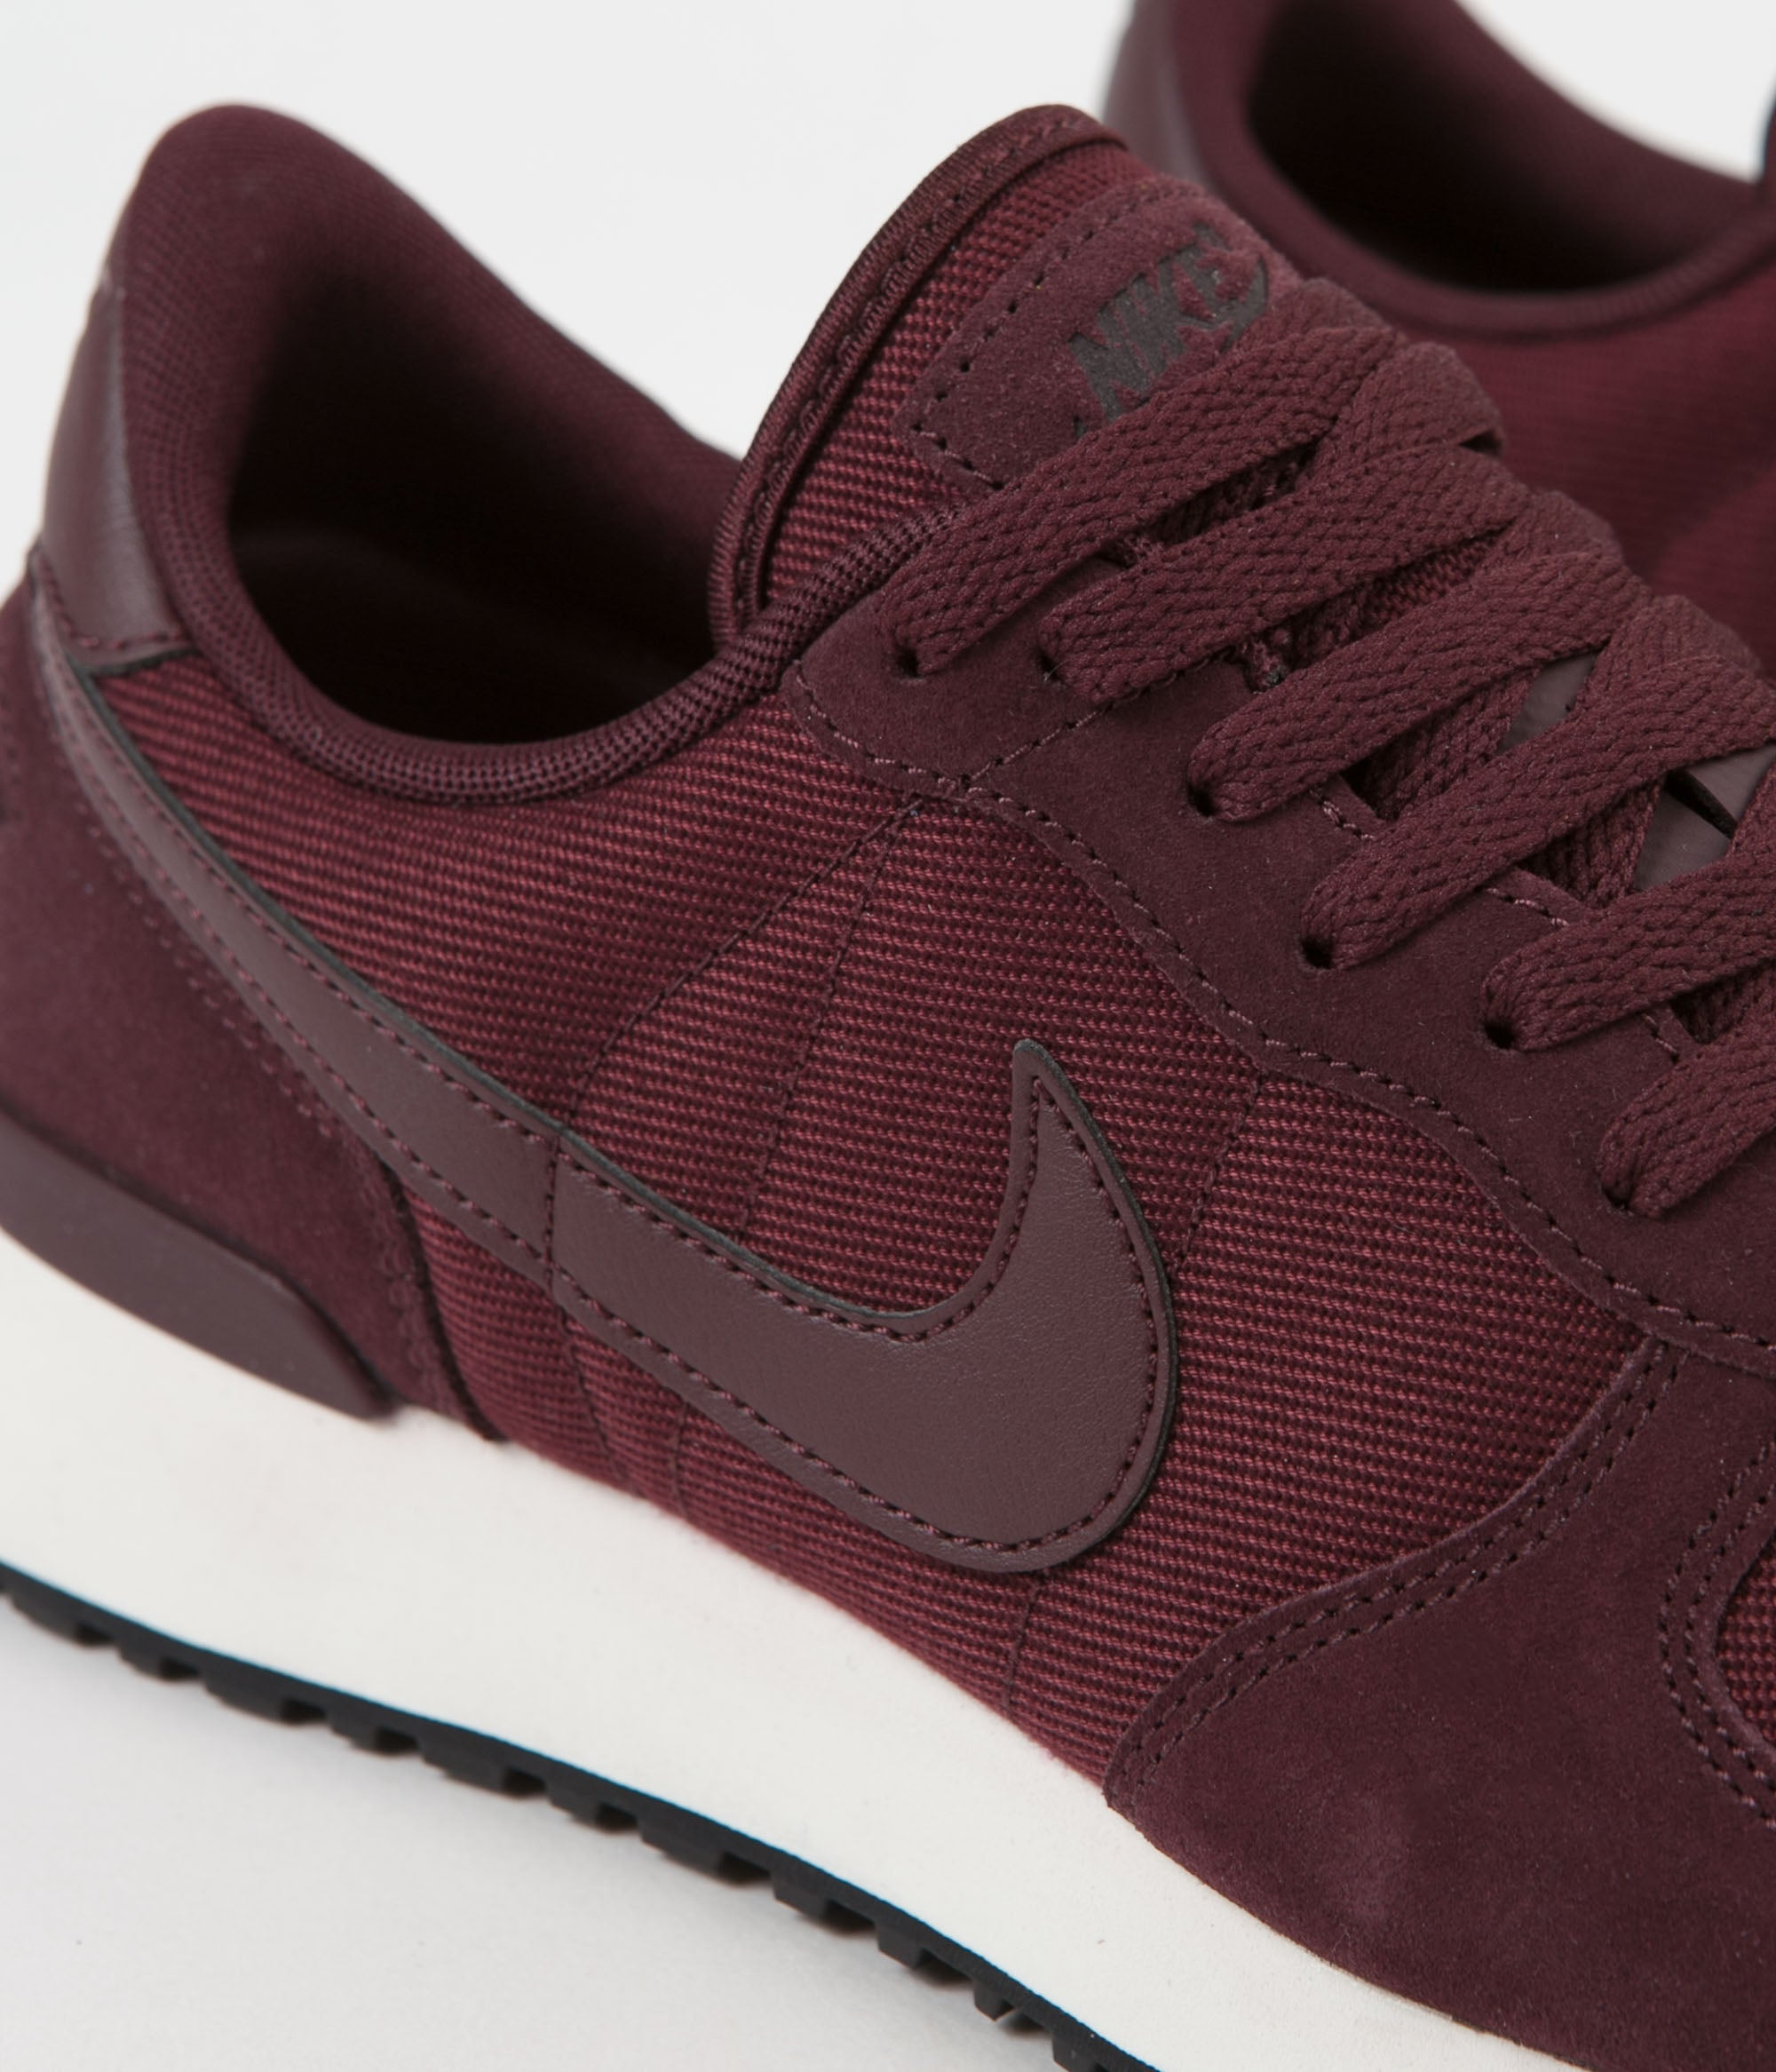 Nike Air Vortex Leather Shoes